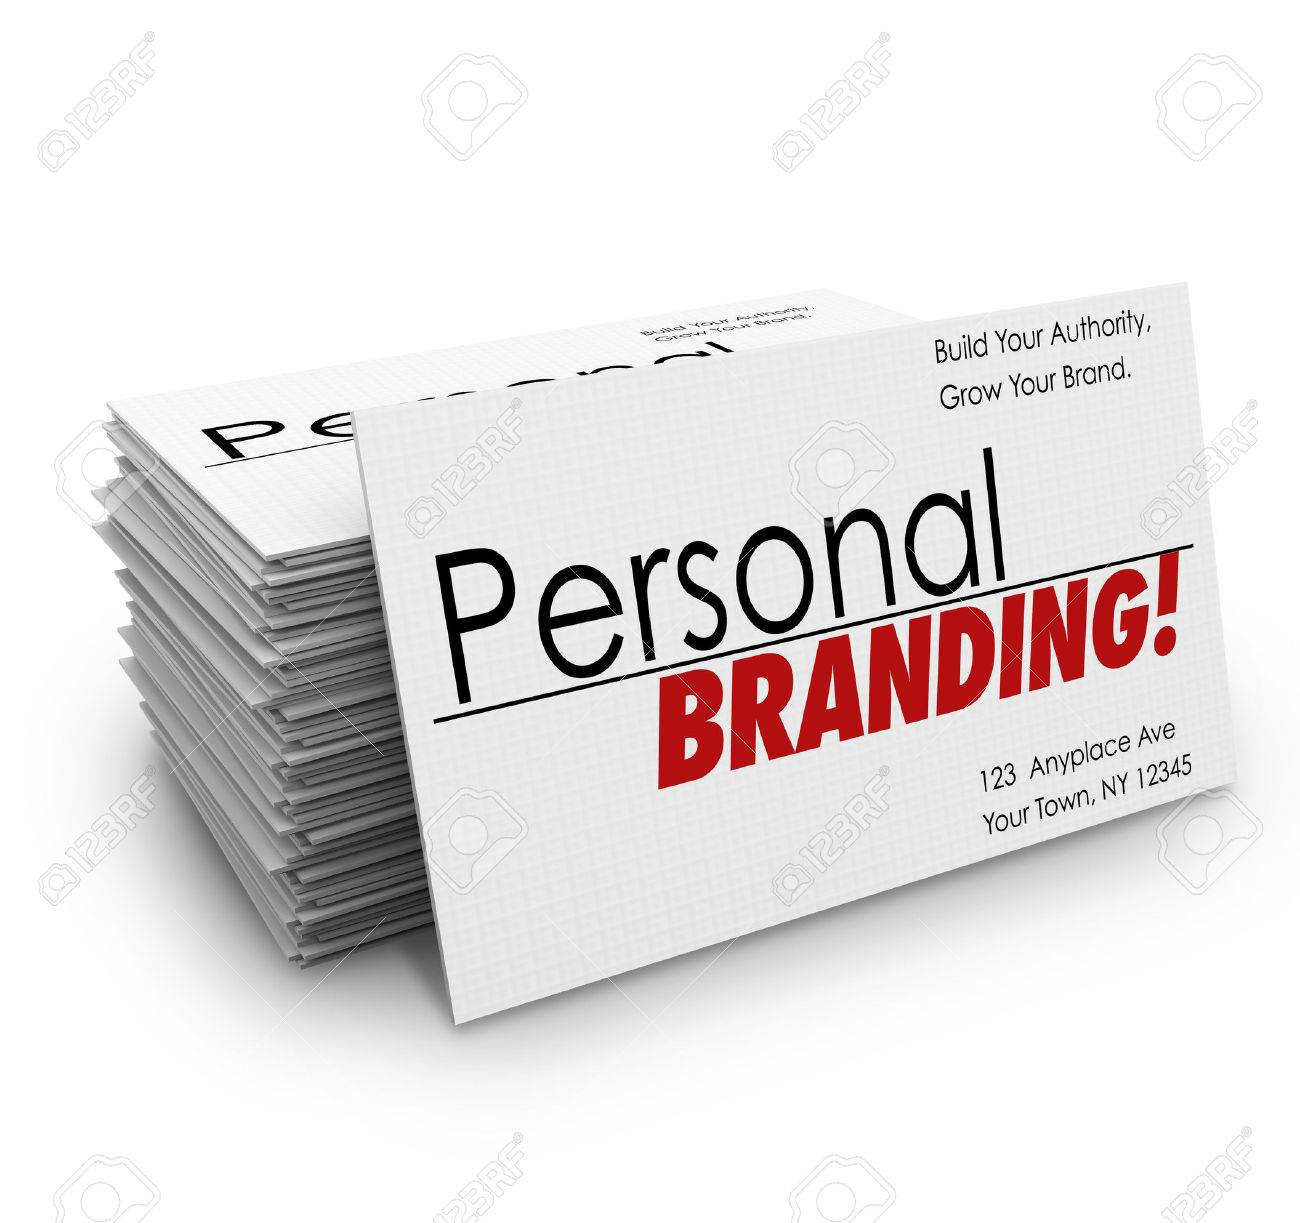 Personal Branding Words On Business Cards To Advertise Your ...